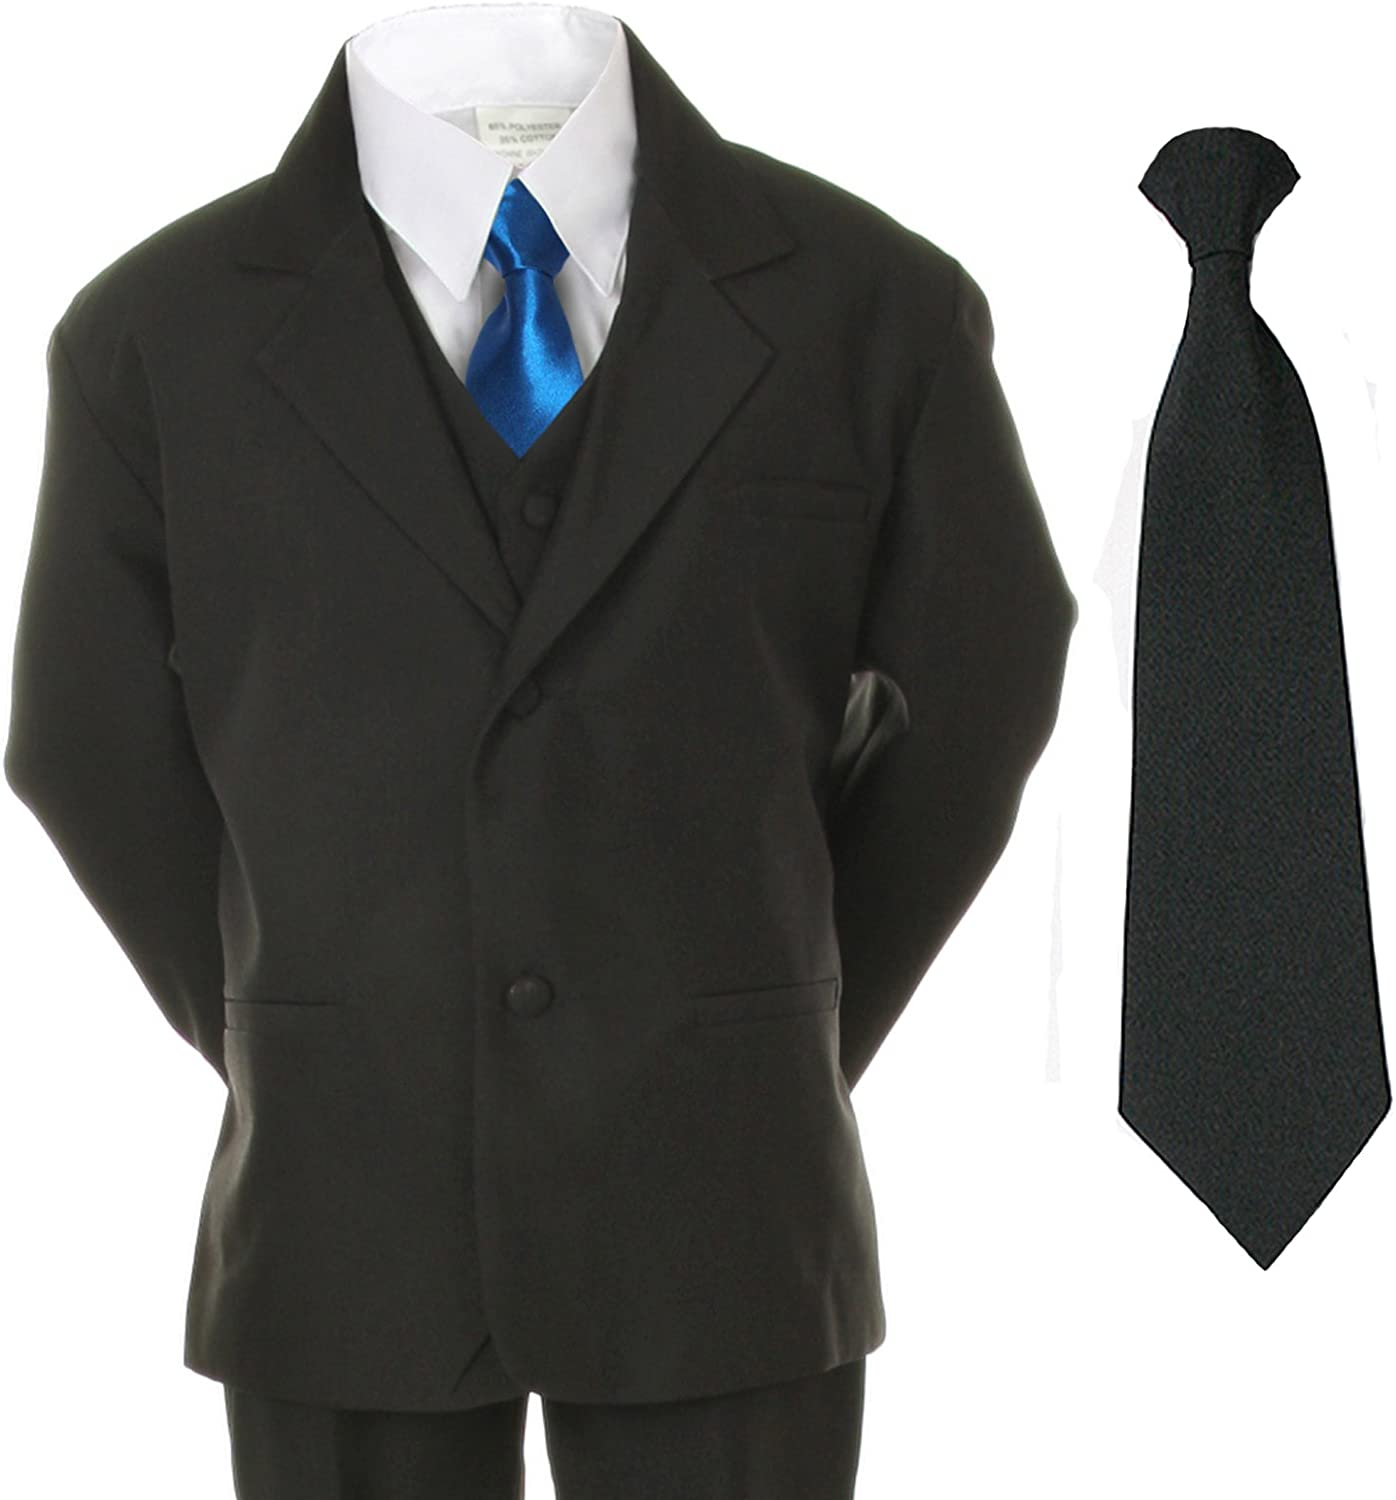 Unotux 6pc Boys Suit with Satin Blue Necktie from Baby to Teen